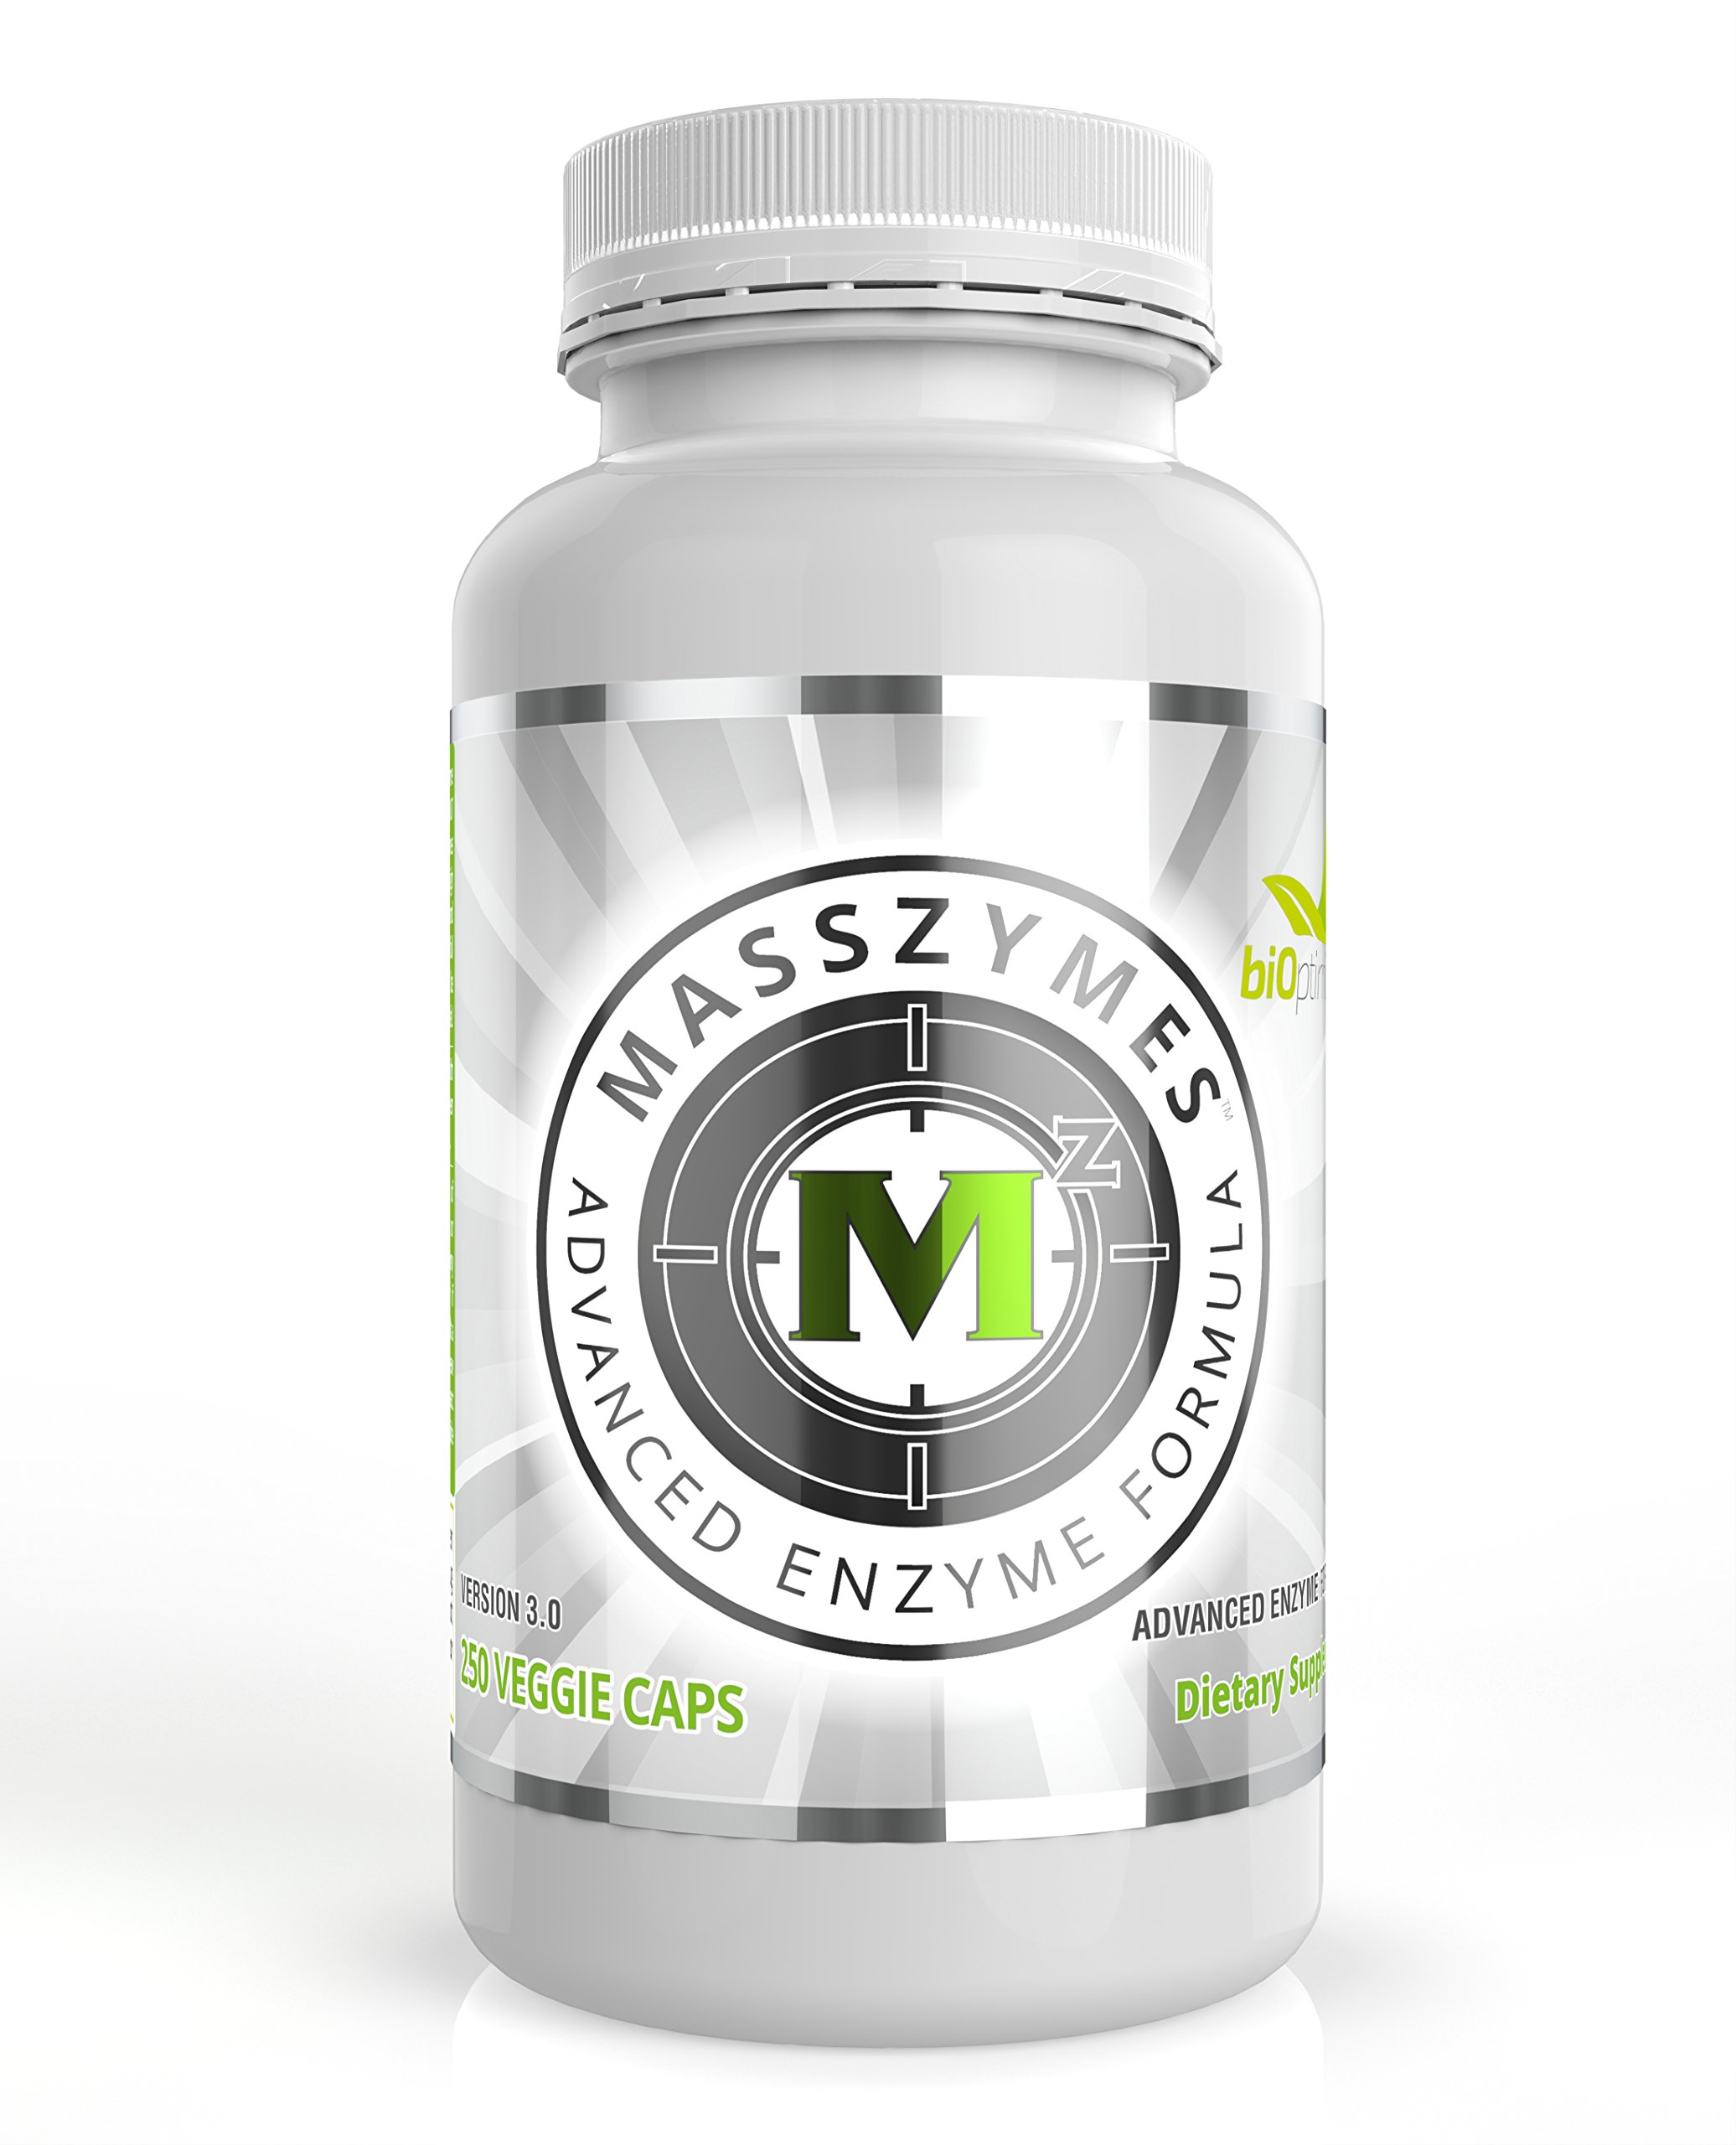 MassZymes - Premium Digestive Enzyme Supplement for Women and Men - Most Potent Enzyme Formula on The Planet - Now with AstraZyme (250 Capsules)